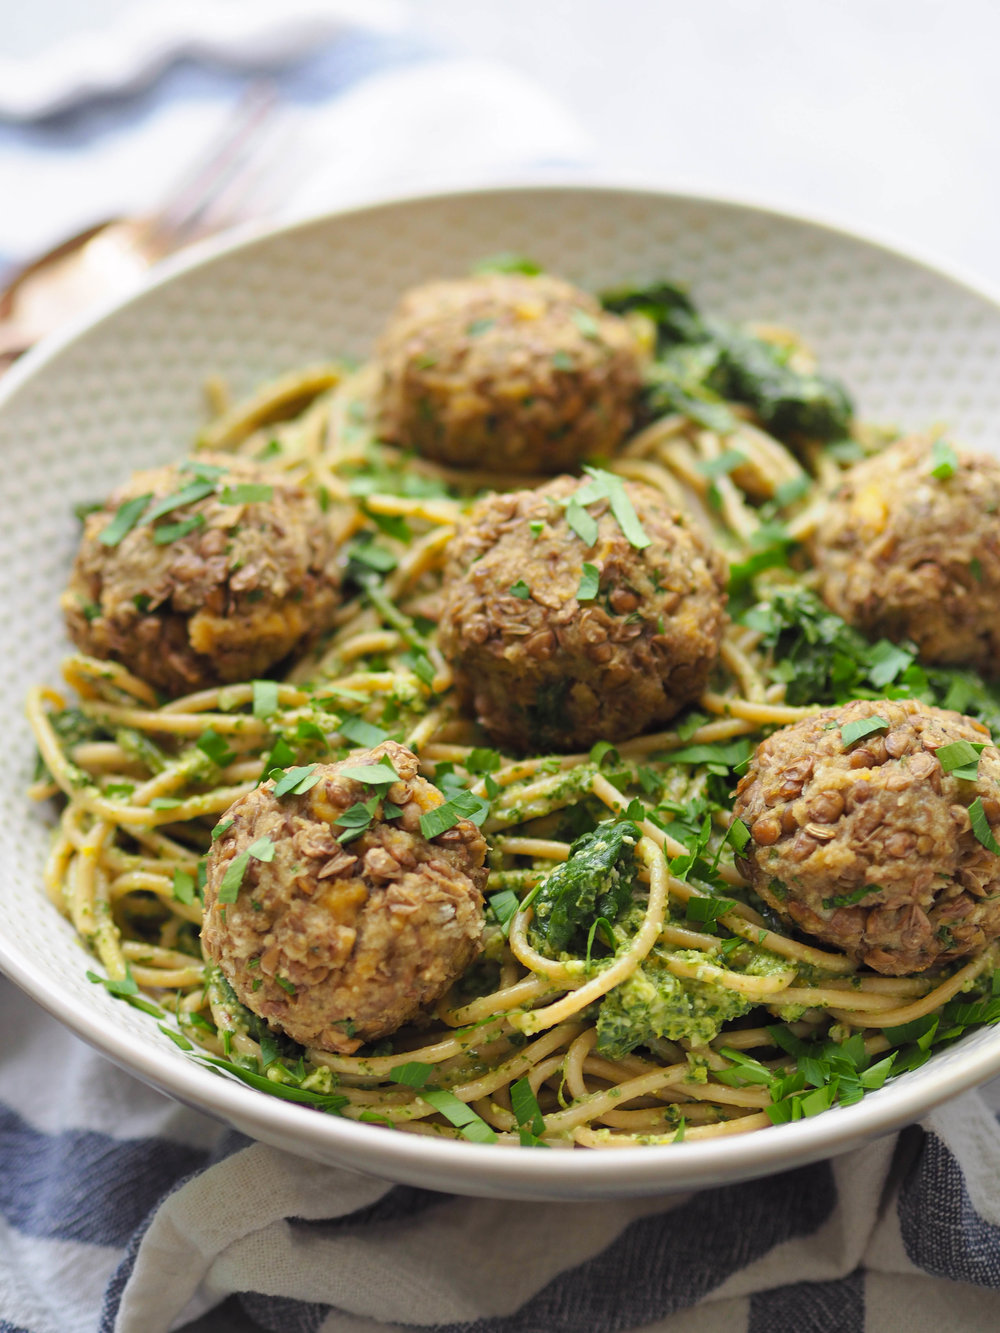 These vegetarian lentil meatballs are perfect over spaghetti and greens tossed with lemony pesto! #vegetarian #pasta #lentils #healthyrecipe